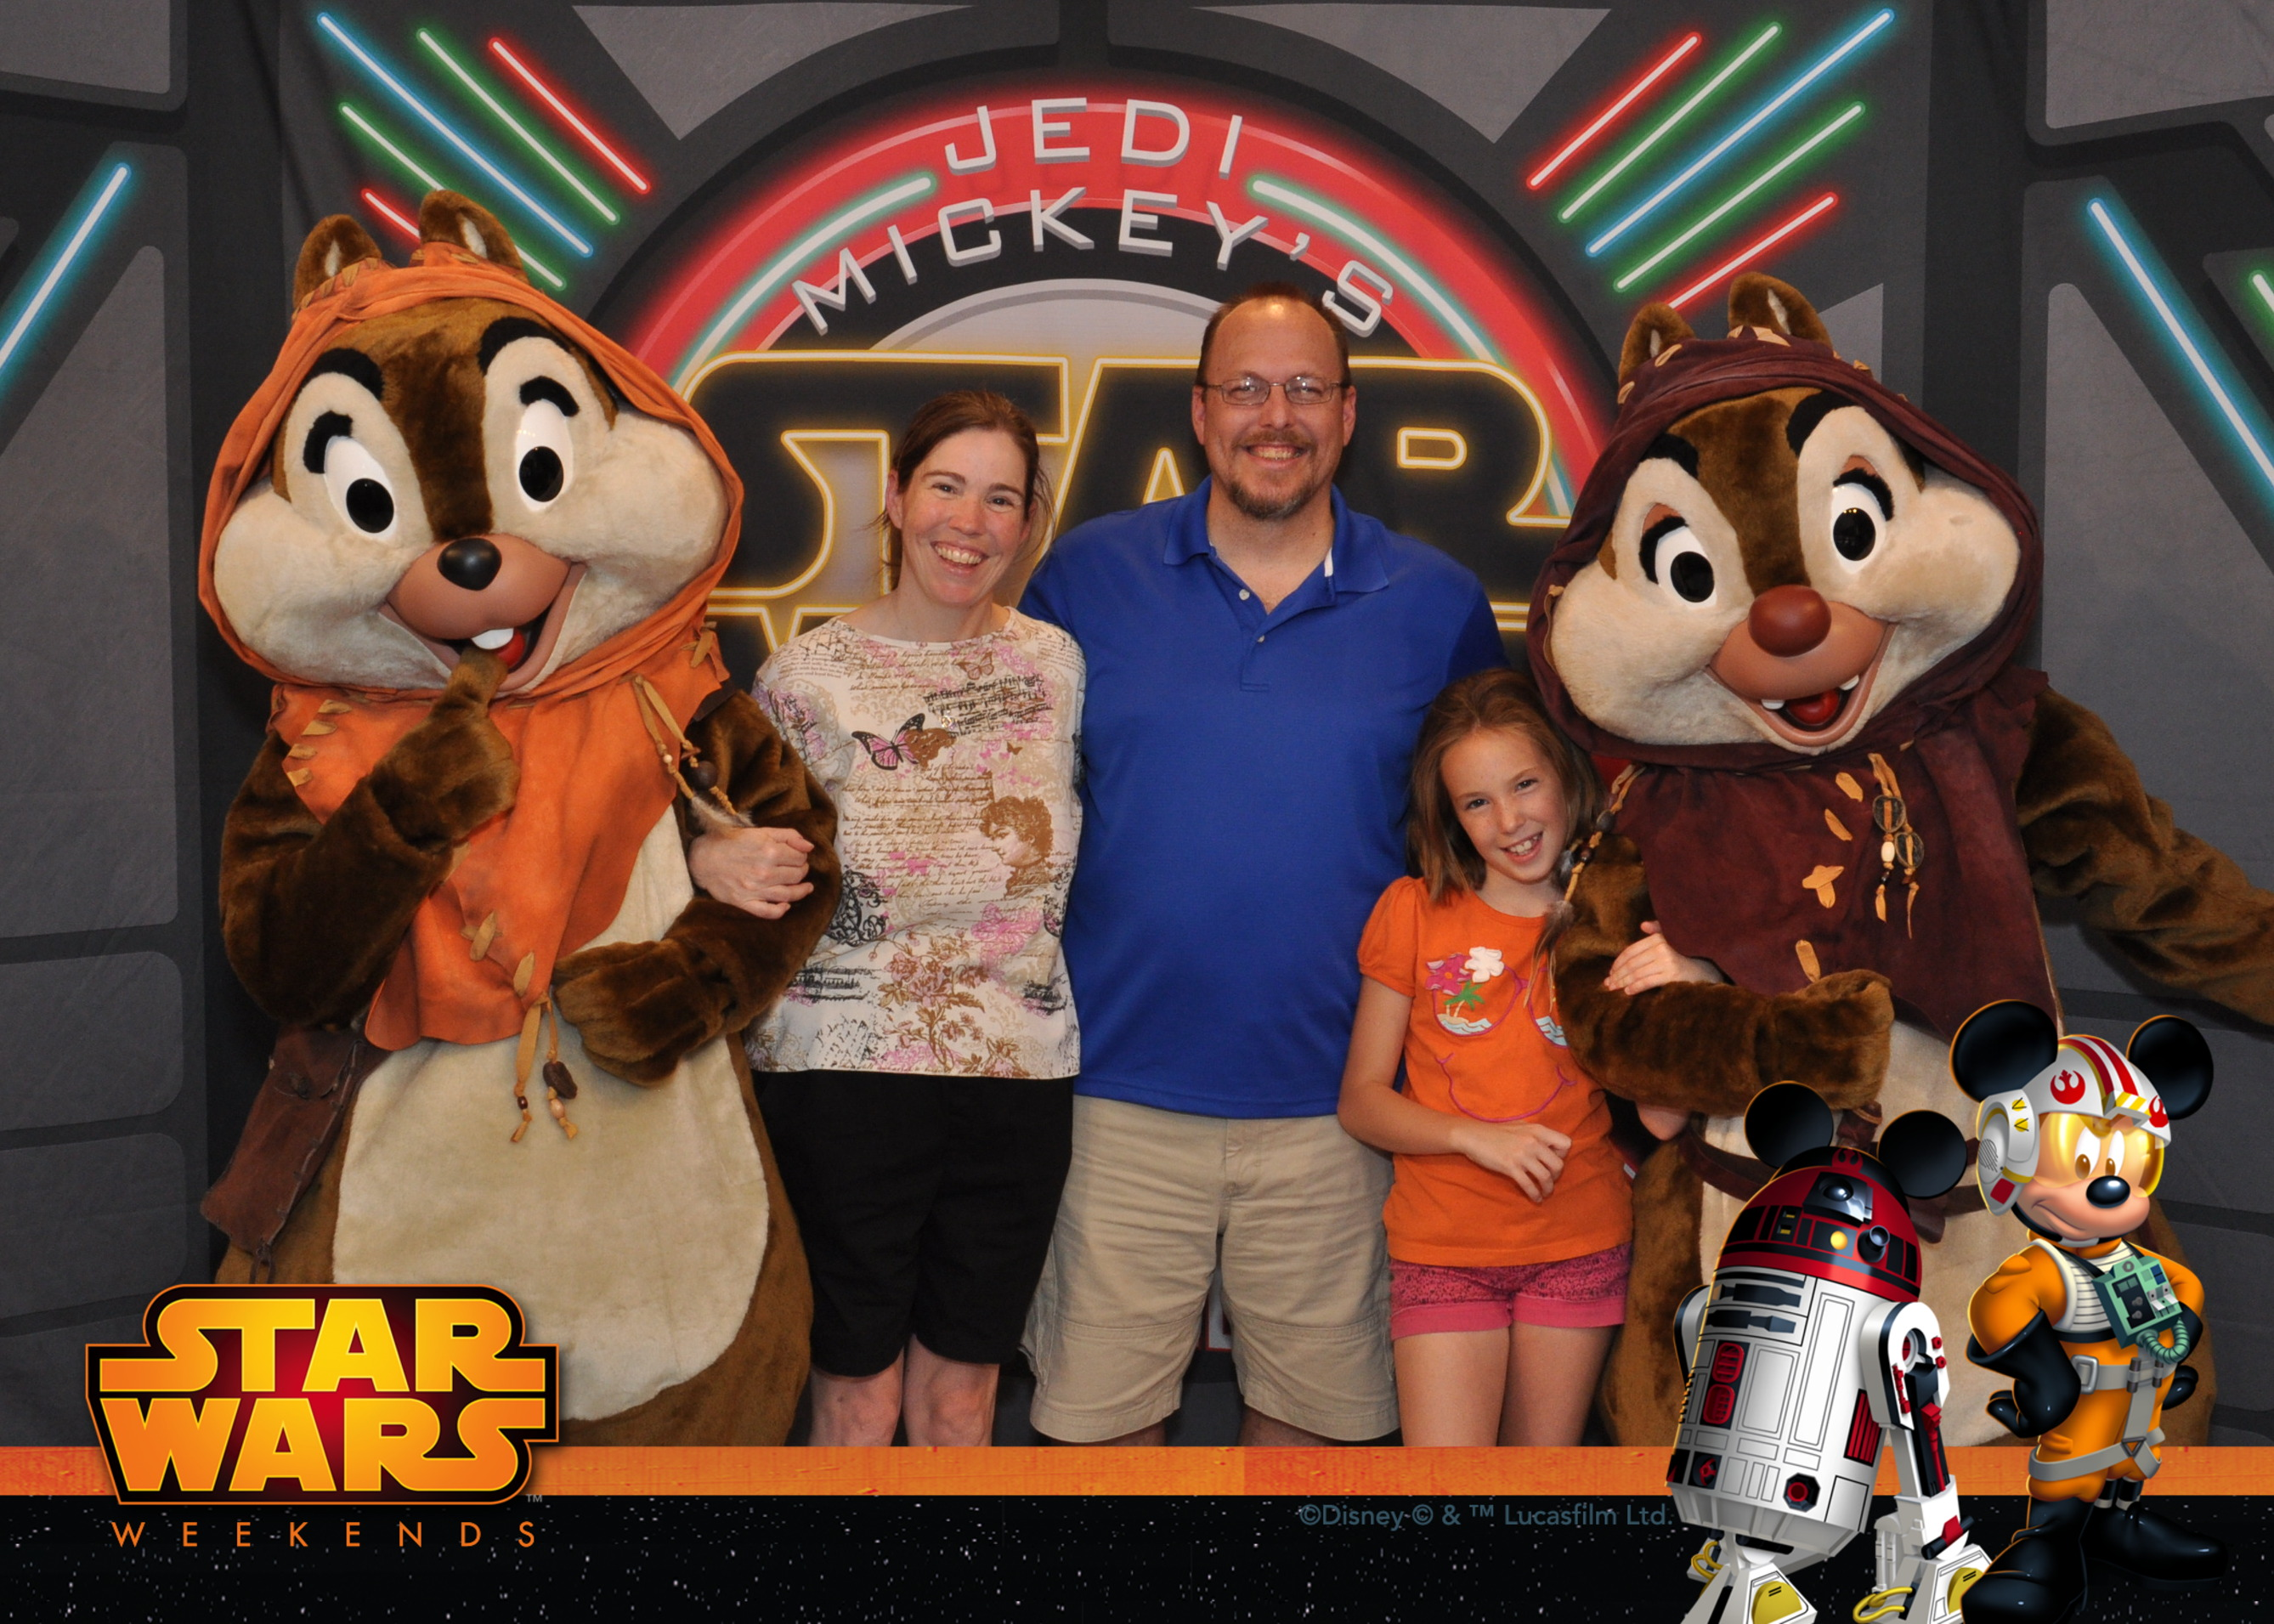 Chip n Dale as Ewoks at Jedi Mickey's Star Wars Character Meal